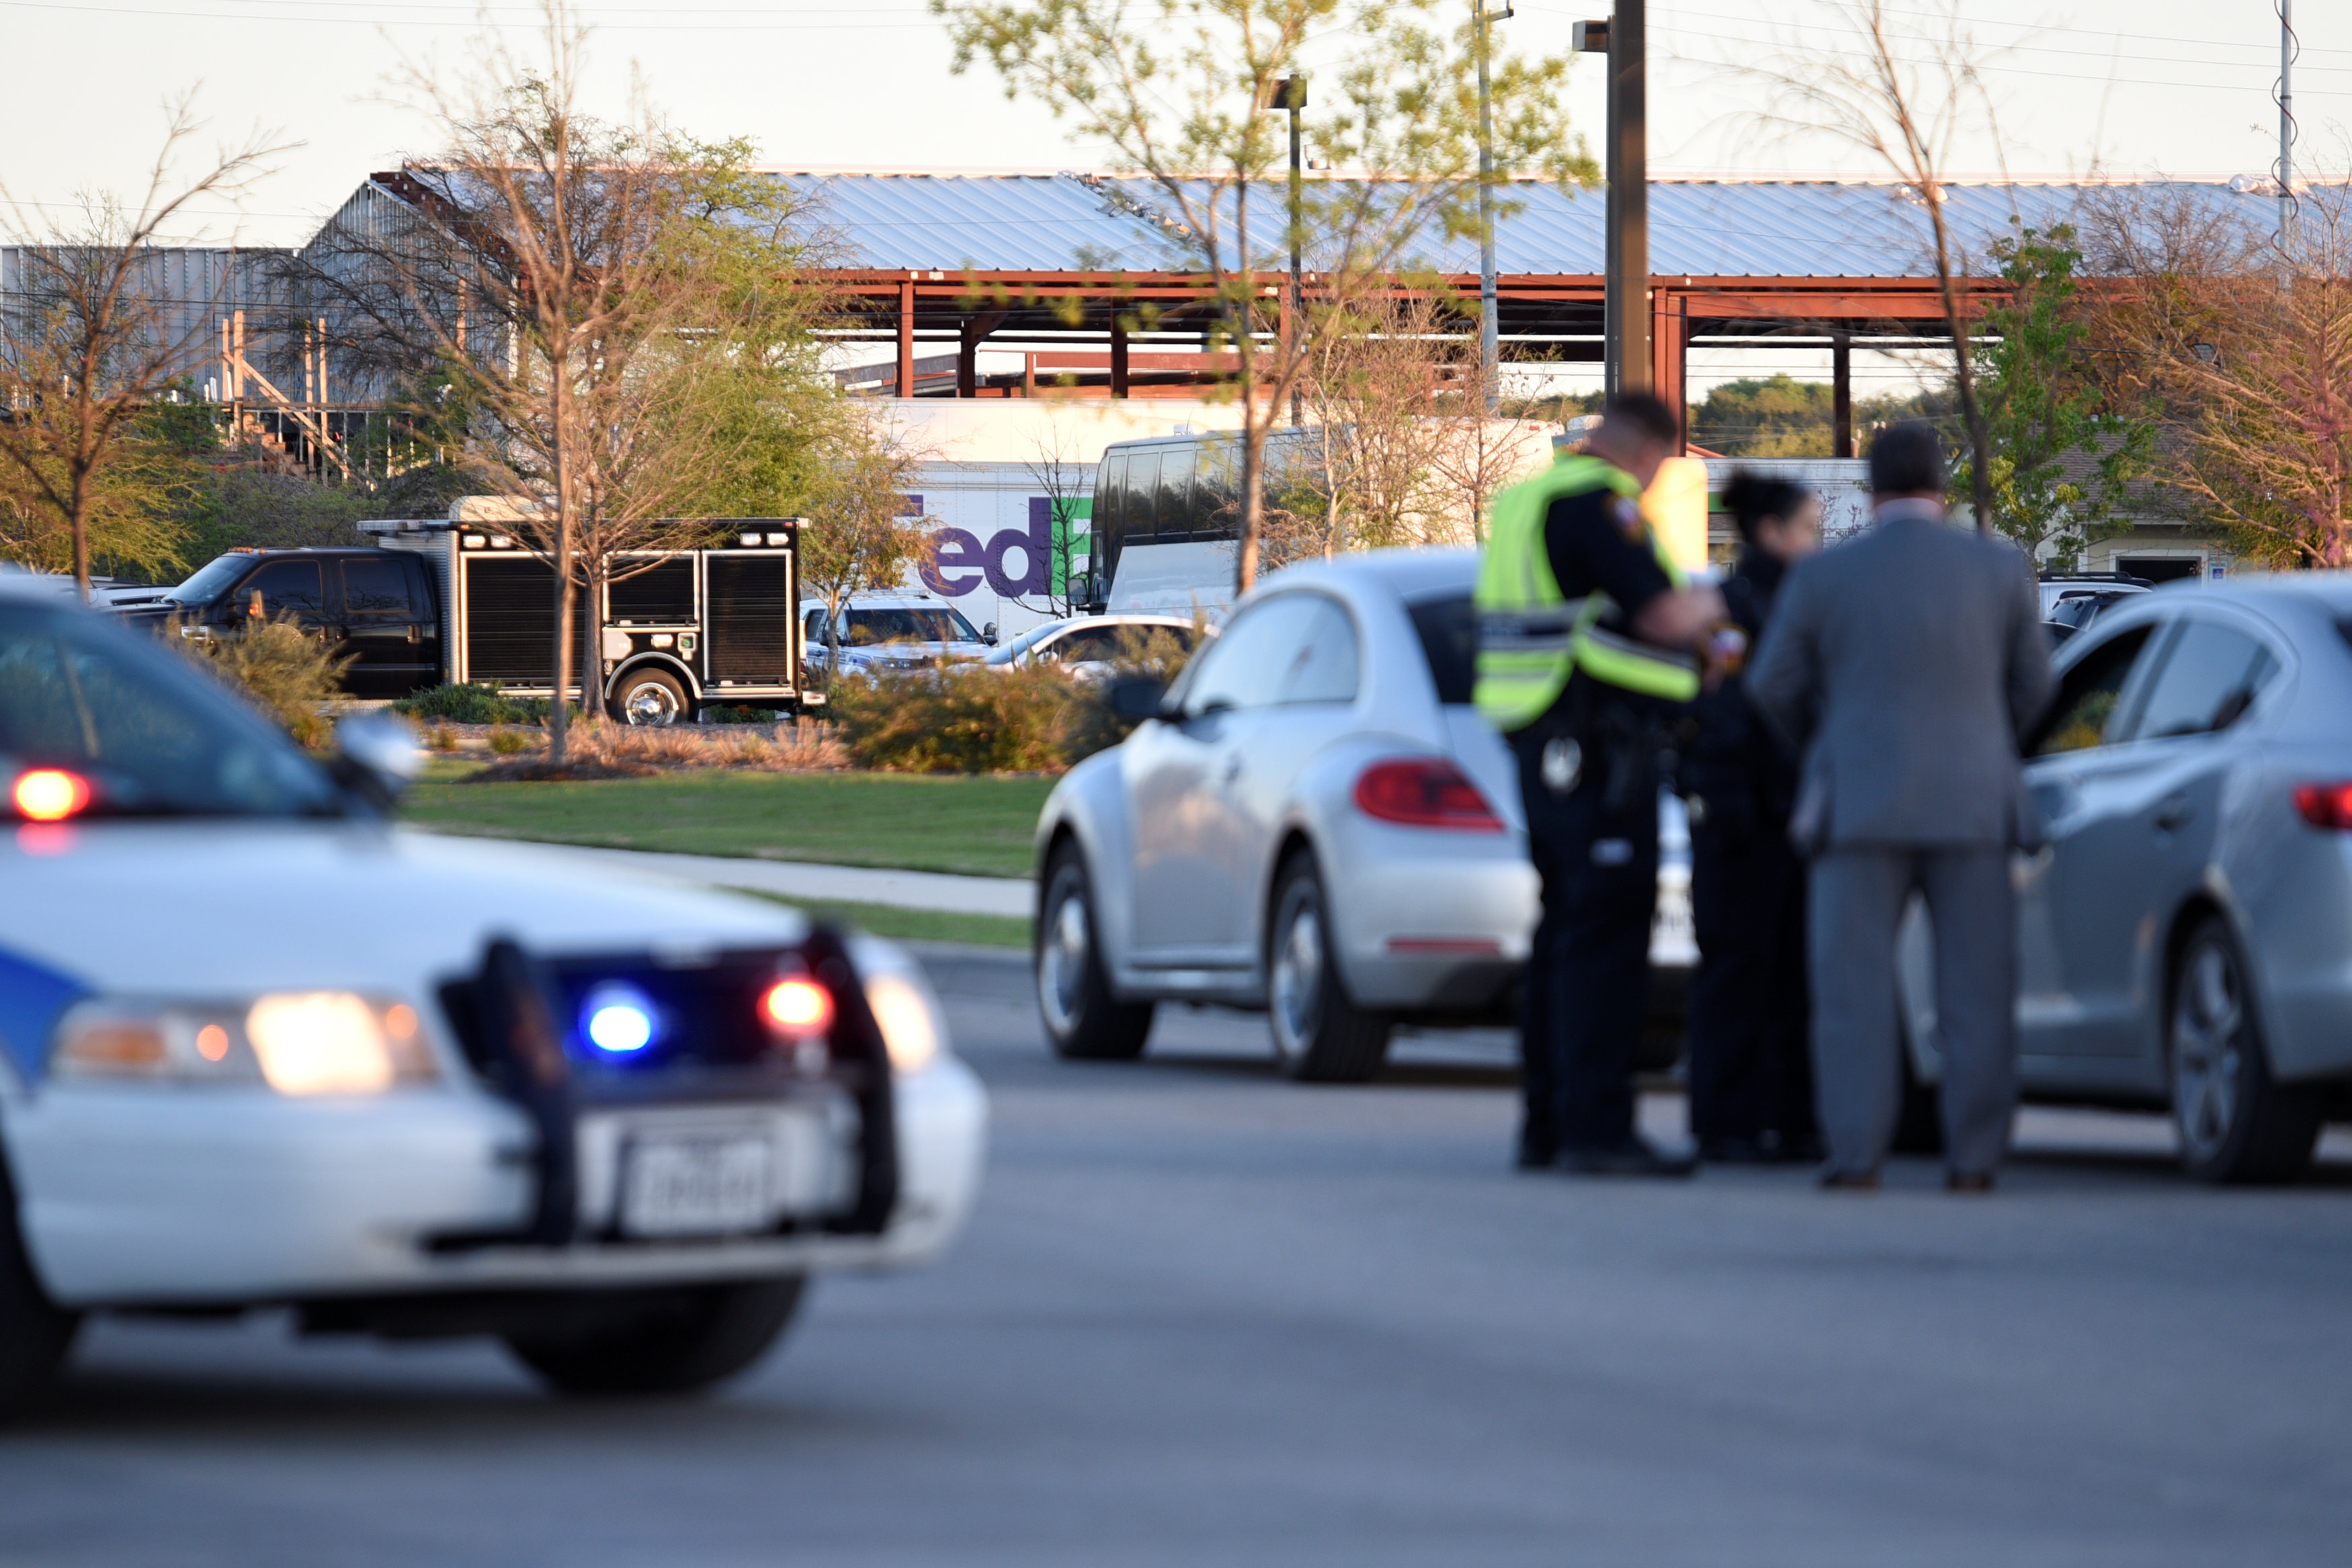 Schertz Police block off Doerr Lane near the scene of a blast at a FedEx facility in Schertz, Texas, U.S., March 20, 2018. REUTERS/Sergio Flore